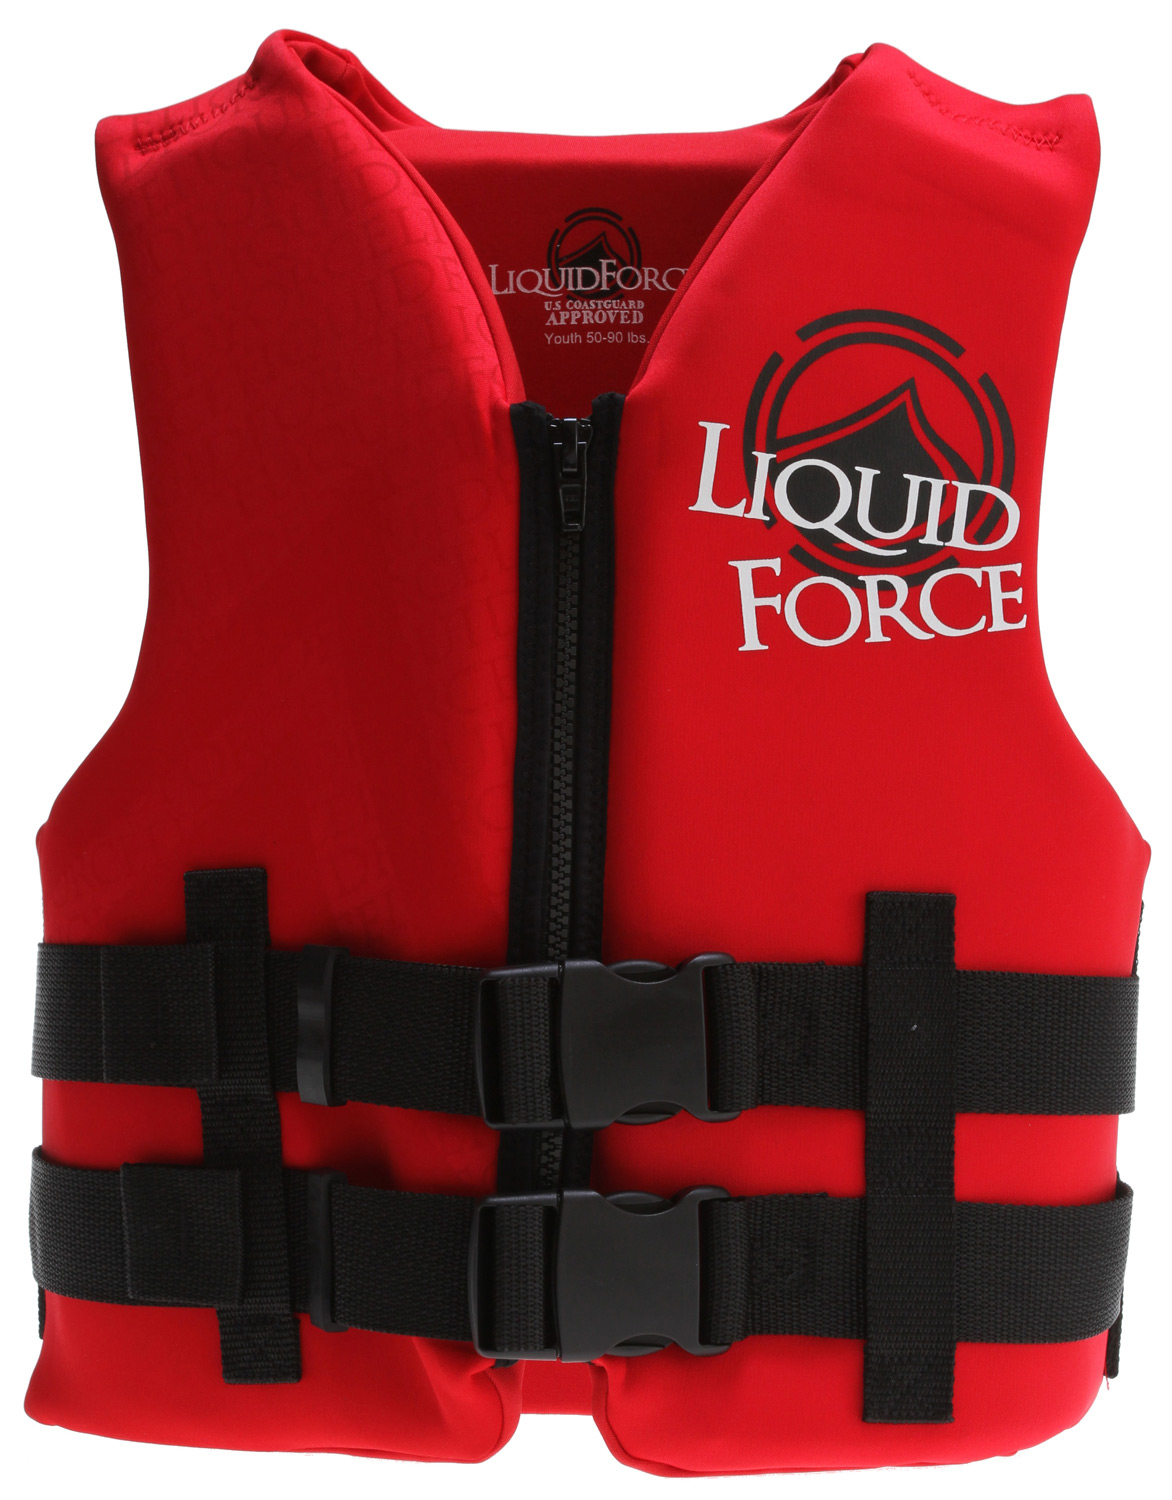 Wake Safety first... that's our motto... especially when it comes to your prized possession. With that in mind, we designed comfortable vests that your little ones will actually wear. These cozy designs keep your grom looking and feeling good... giving them the confidence to become the future of our sport.Key Features of the Liquid Force Nemesis Classic CGA Wakeboard Vest: US Coast Guard Approved: Maximum flotation and safety Oversized Arm Holes: Extra space and comfort for added mobility Heavy Duty Zipper: Secure solid hold Leg Straps (available on child and infant sized Vest: Safe and secure fit that won't ride up Safety Grab Handles (available on child and infant sized Vest: Something safe to grab onto if they fall in Re-Designed Zipper on Infant Vest: Same CGA safety with a more comfortable fit around the neck - $27.95